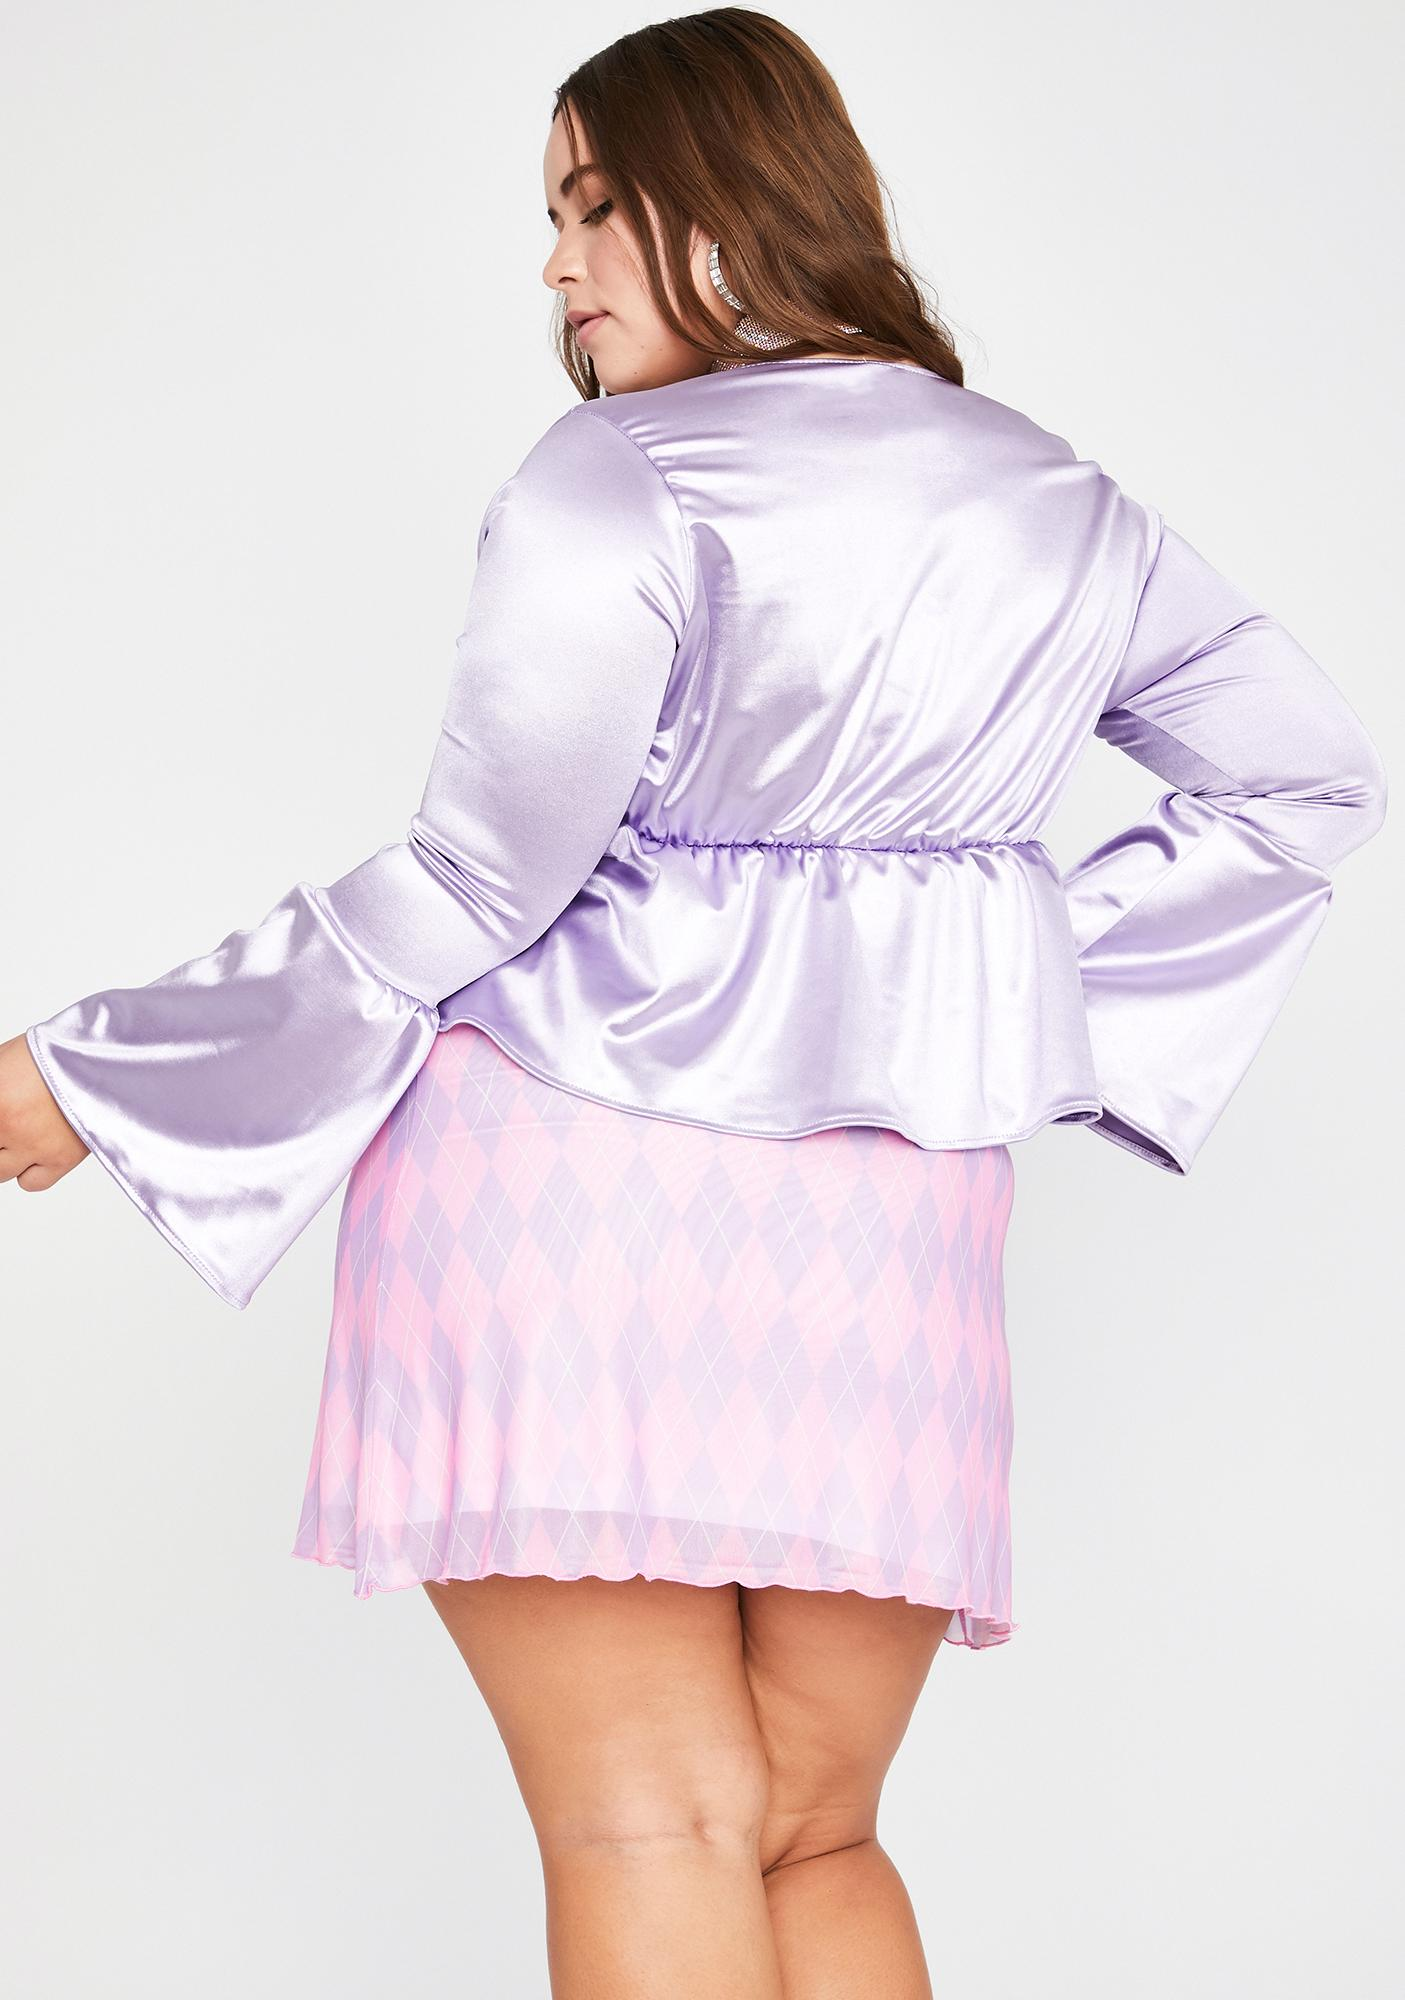 Her Magical Raised Interest Crop Blouse